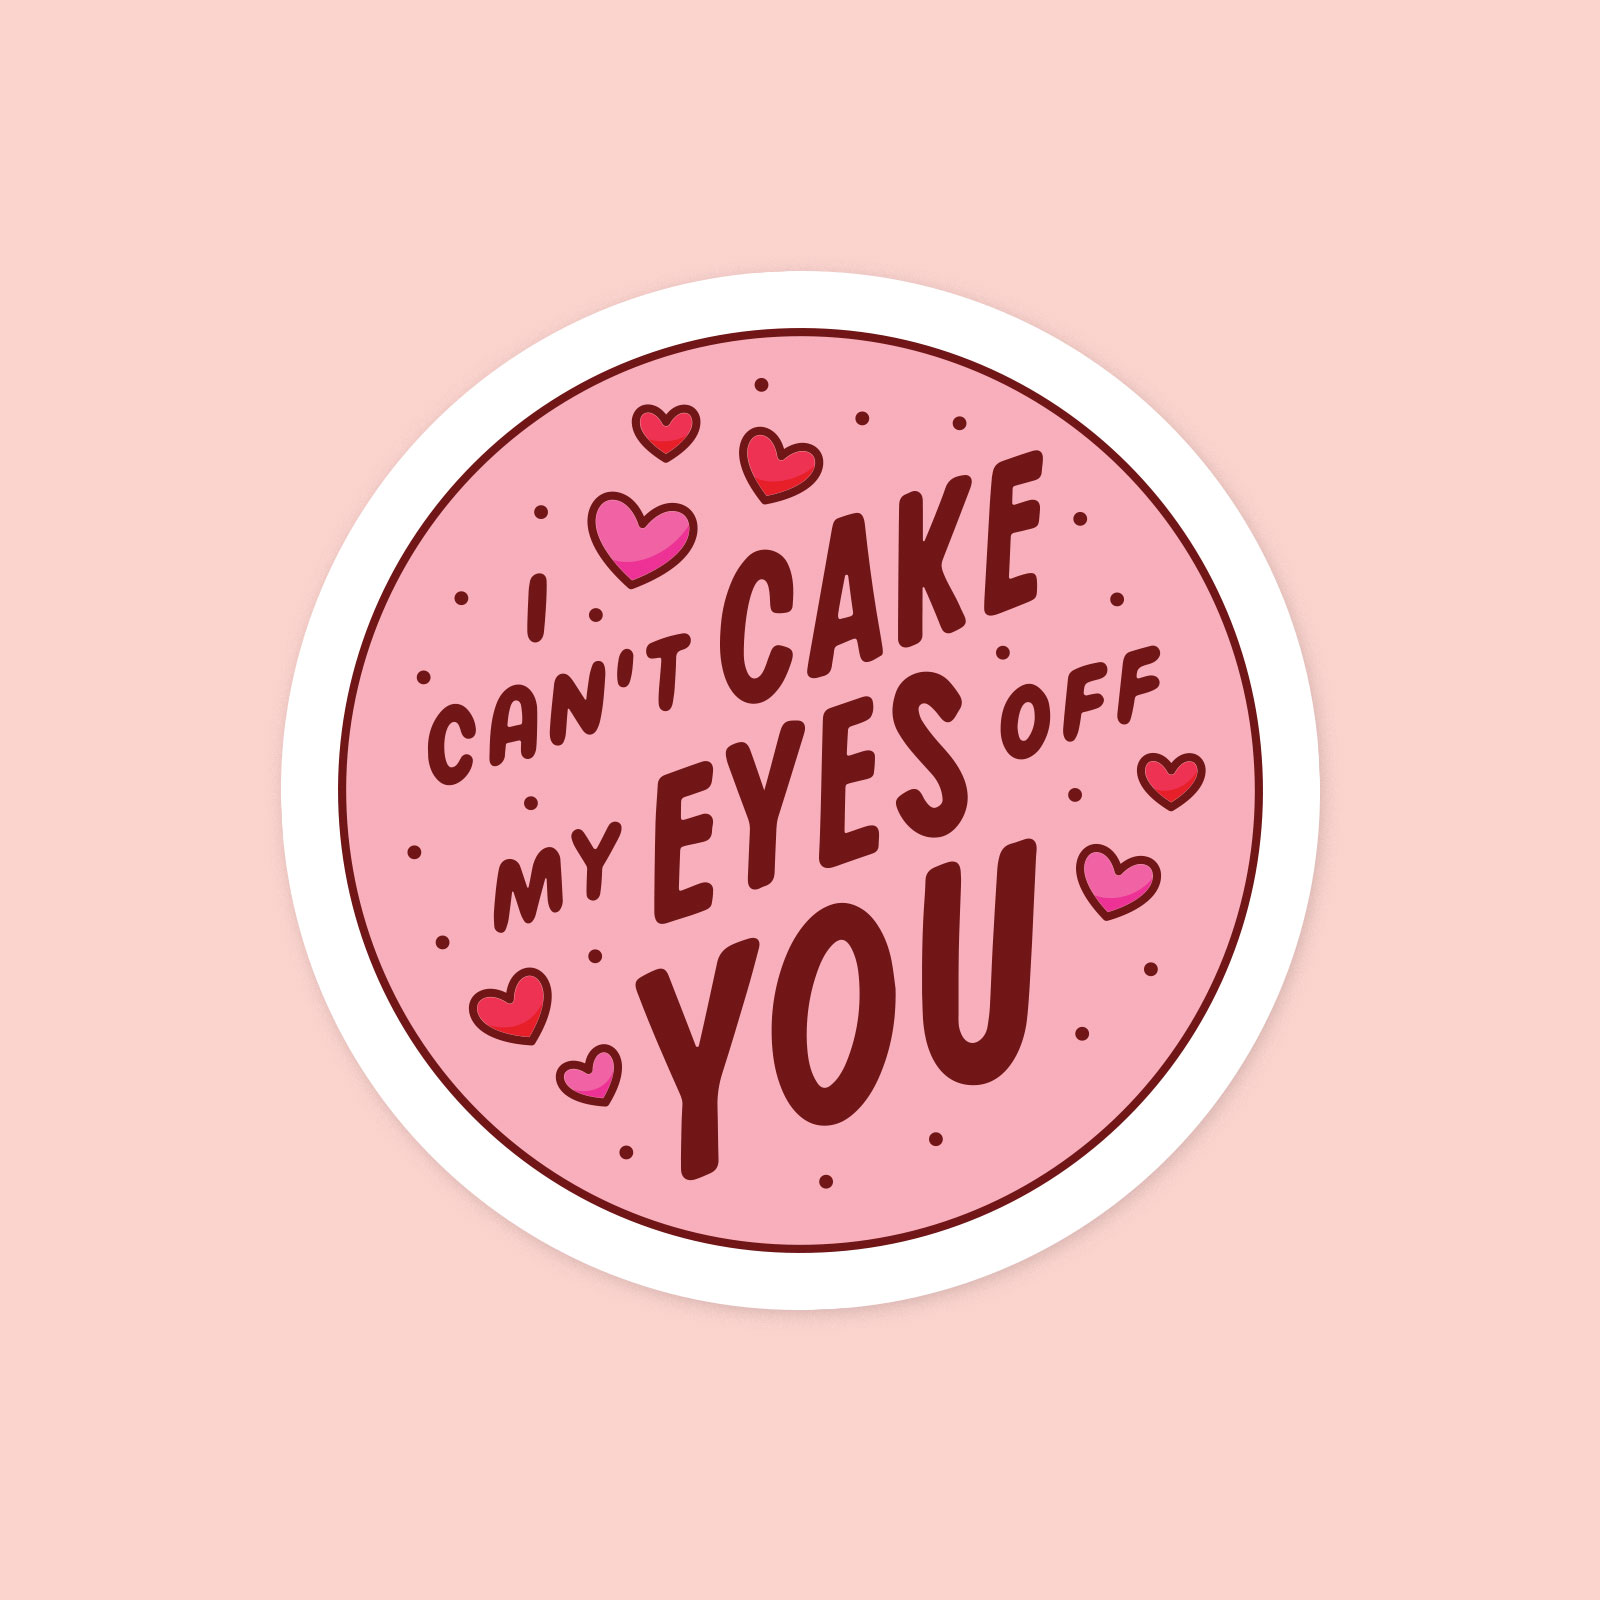 A circular sticker that says I Can't Cake My Eyes Off You, surrounded by hearts.